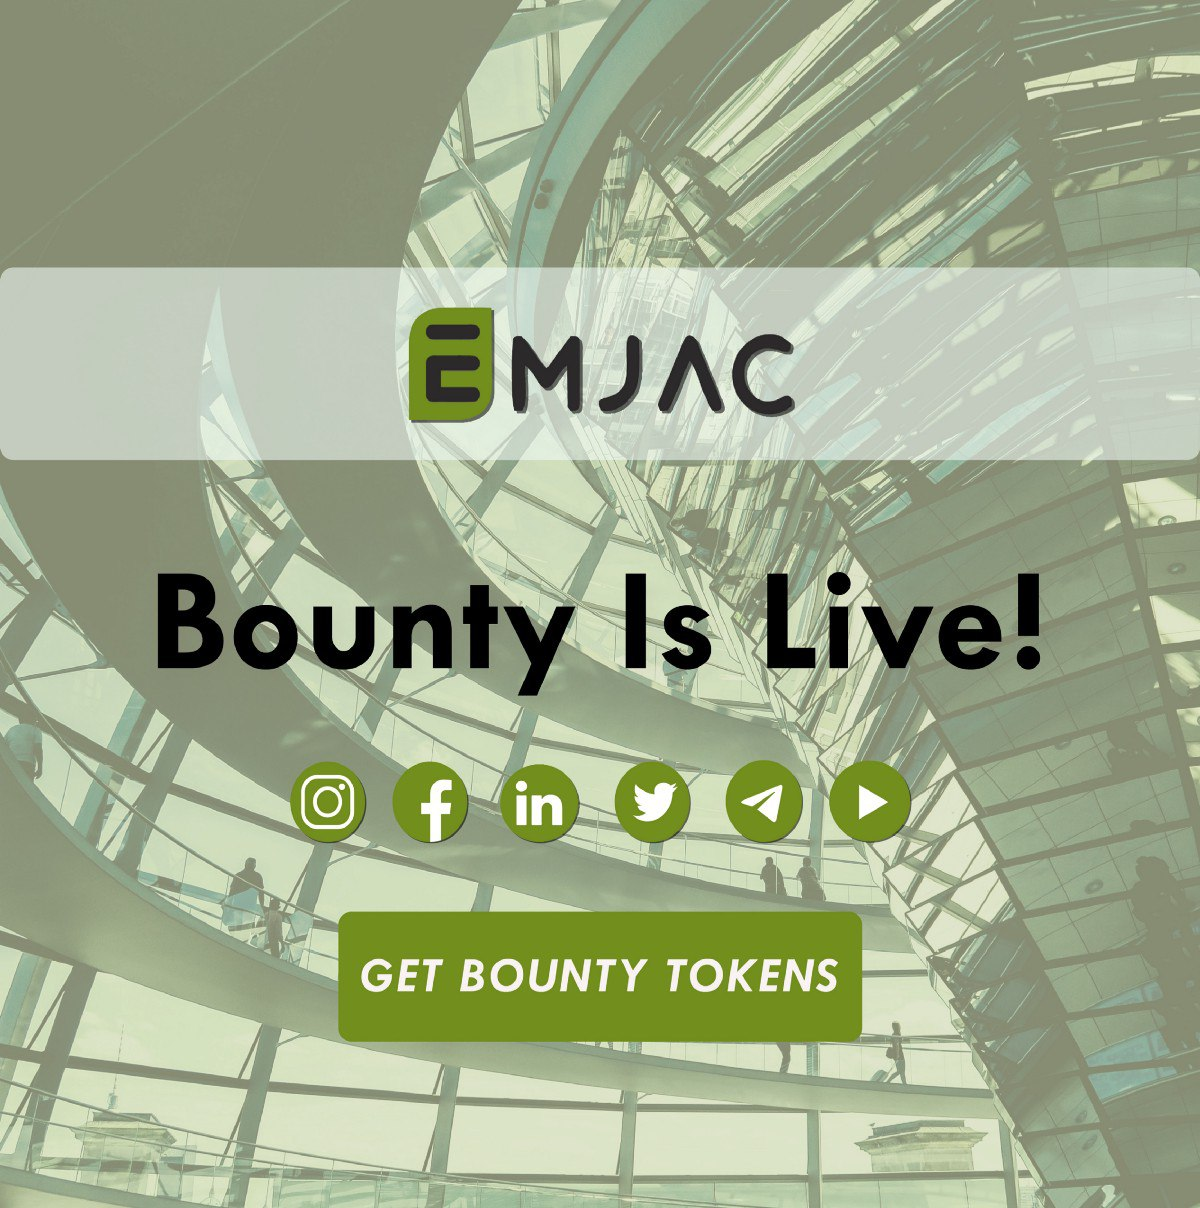 EJMAC's offers cryptocurrency that will eliminate the waste tires pollution 5